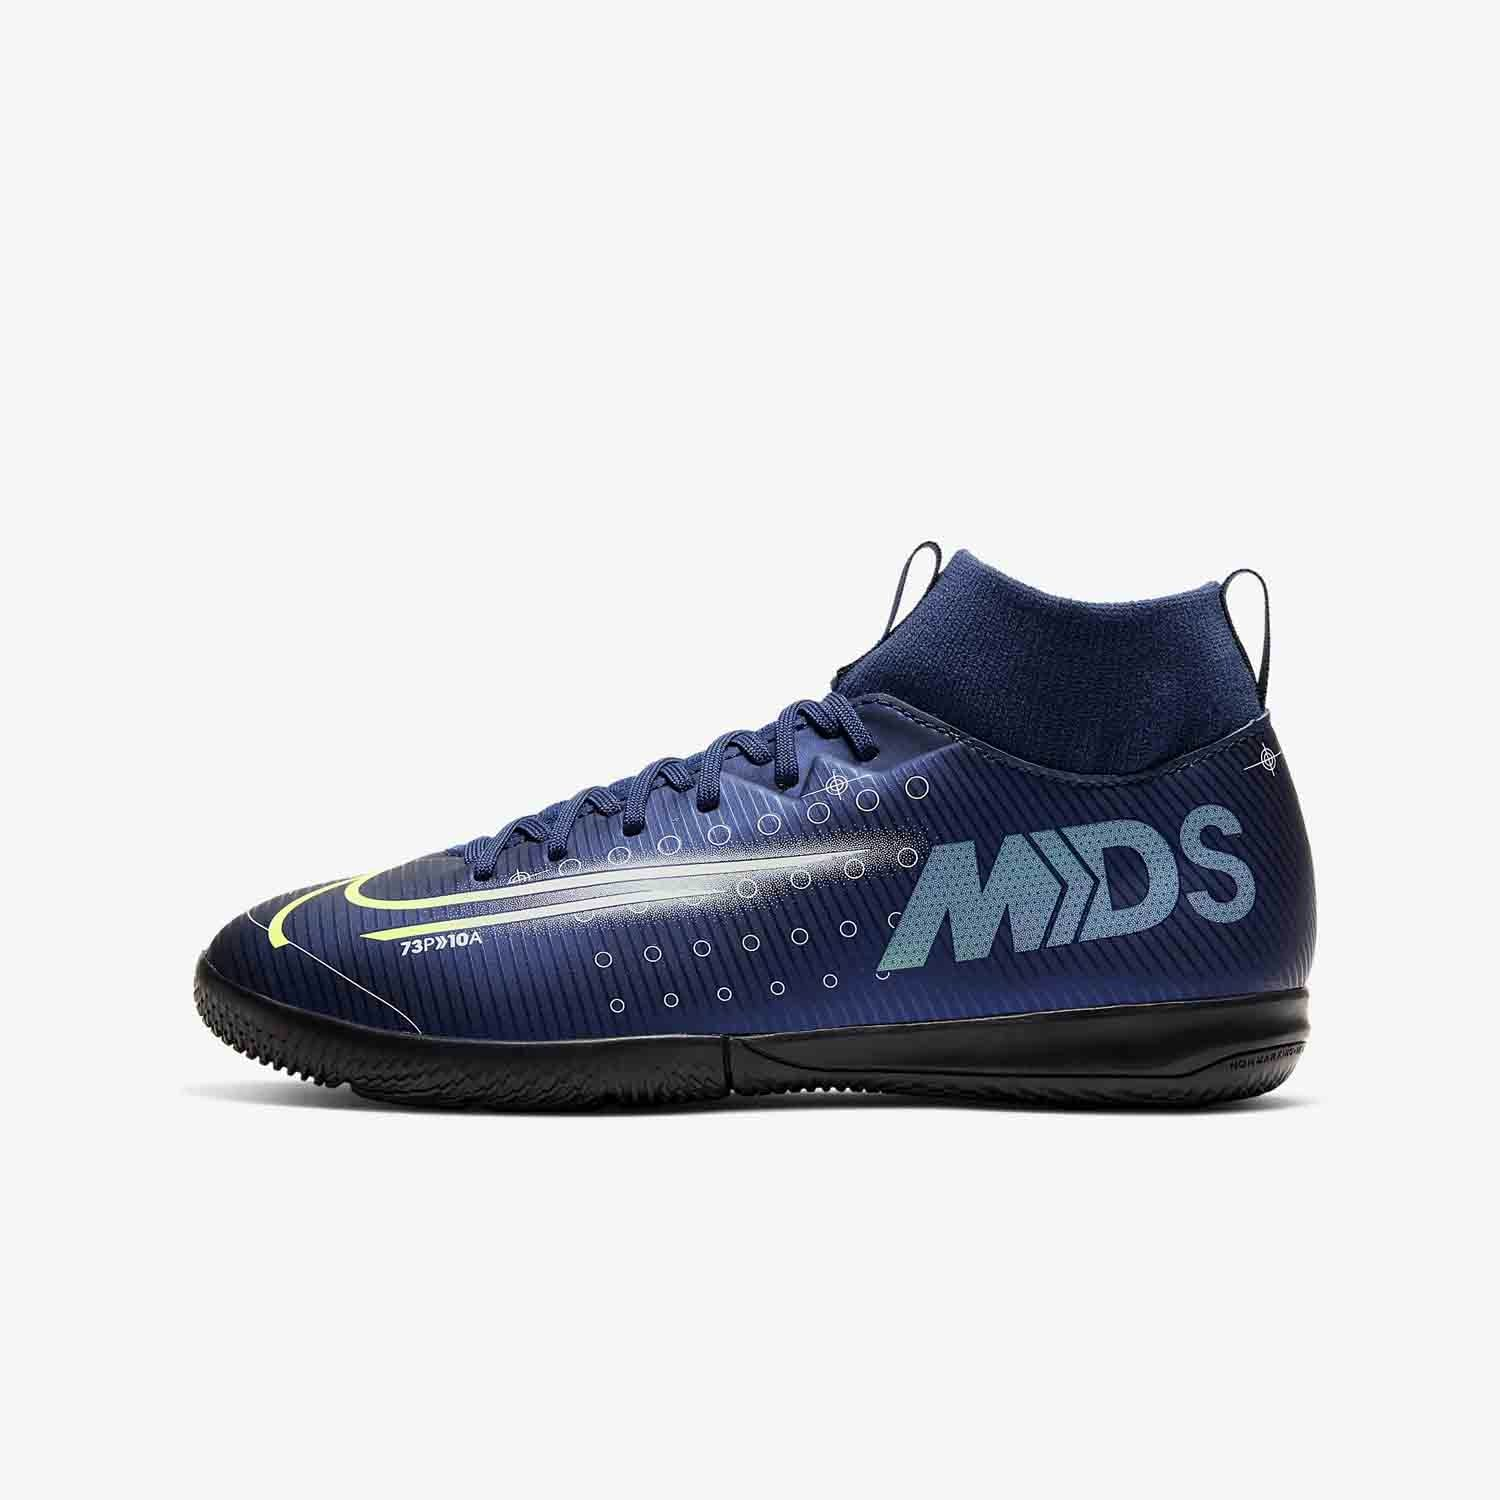 Kids Mercurial Superfly 7 Academy MDS IC Indoor Soccer Shoe